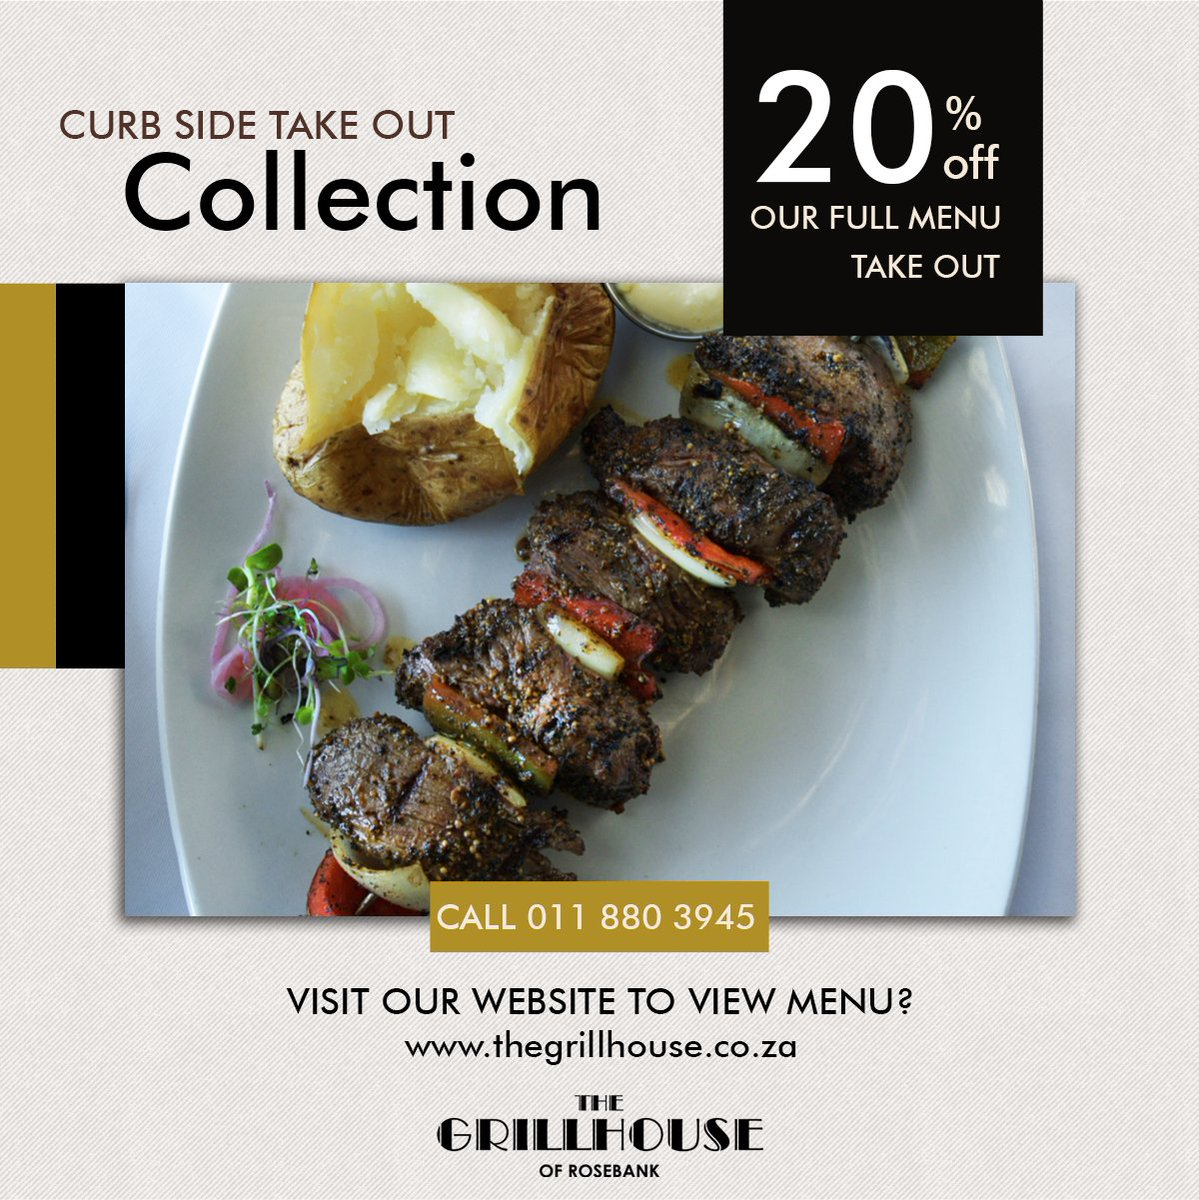 CURB SIDE COLLECTION. FOR THOSE WHO WANT TO TAKE THE GRILLHOUSE HOME! - FLATTEN THE CURVE. We are offering take out (with curb side collection) at a 20% discount!  Call 011 880 3945 to order your take out. Visit https://t.co/OnWUdcA4qR to view the menu! #covid19 #flattenthecurve https://t.co/oQKKQnTSID